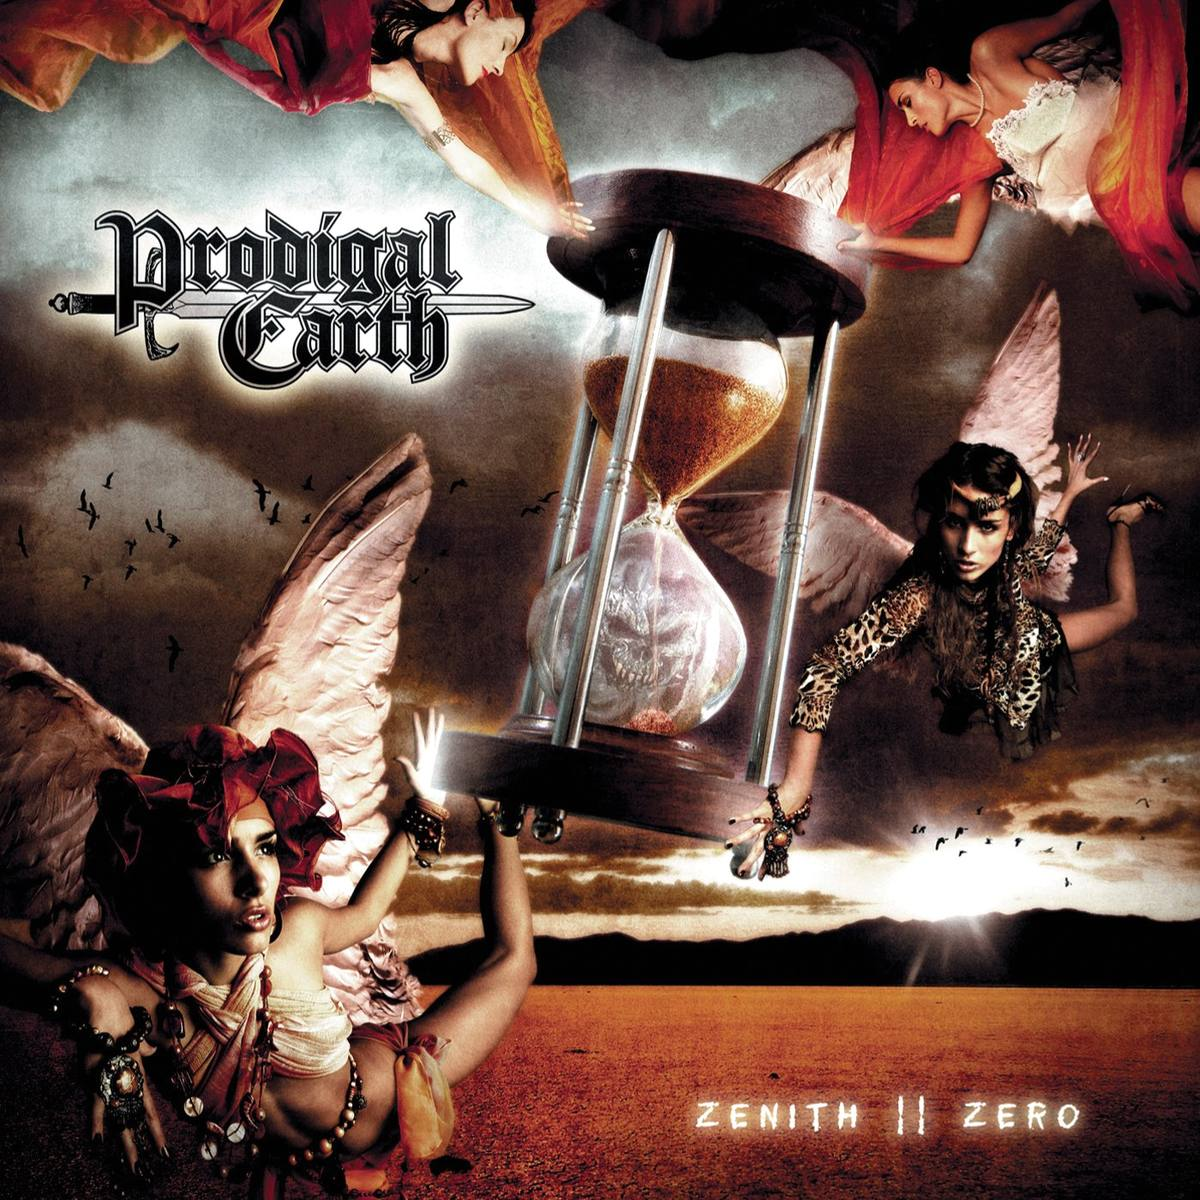 Prodigal Earth - Zenith II Zero